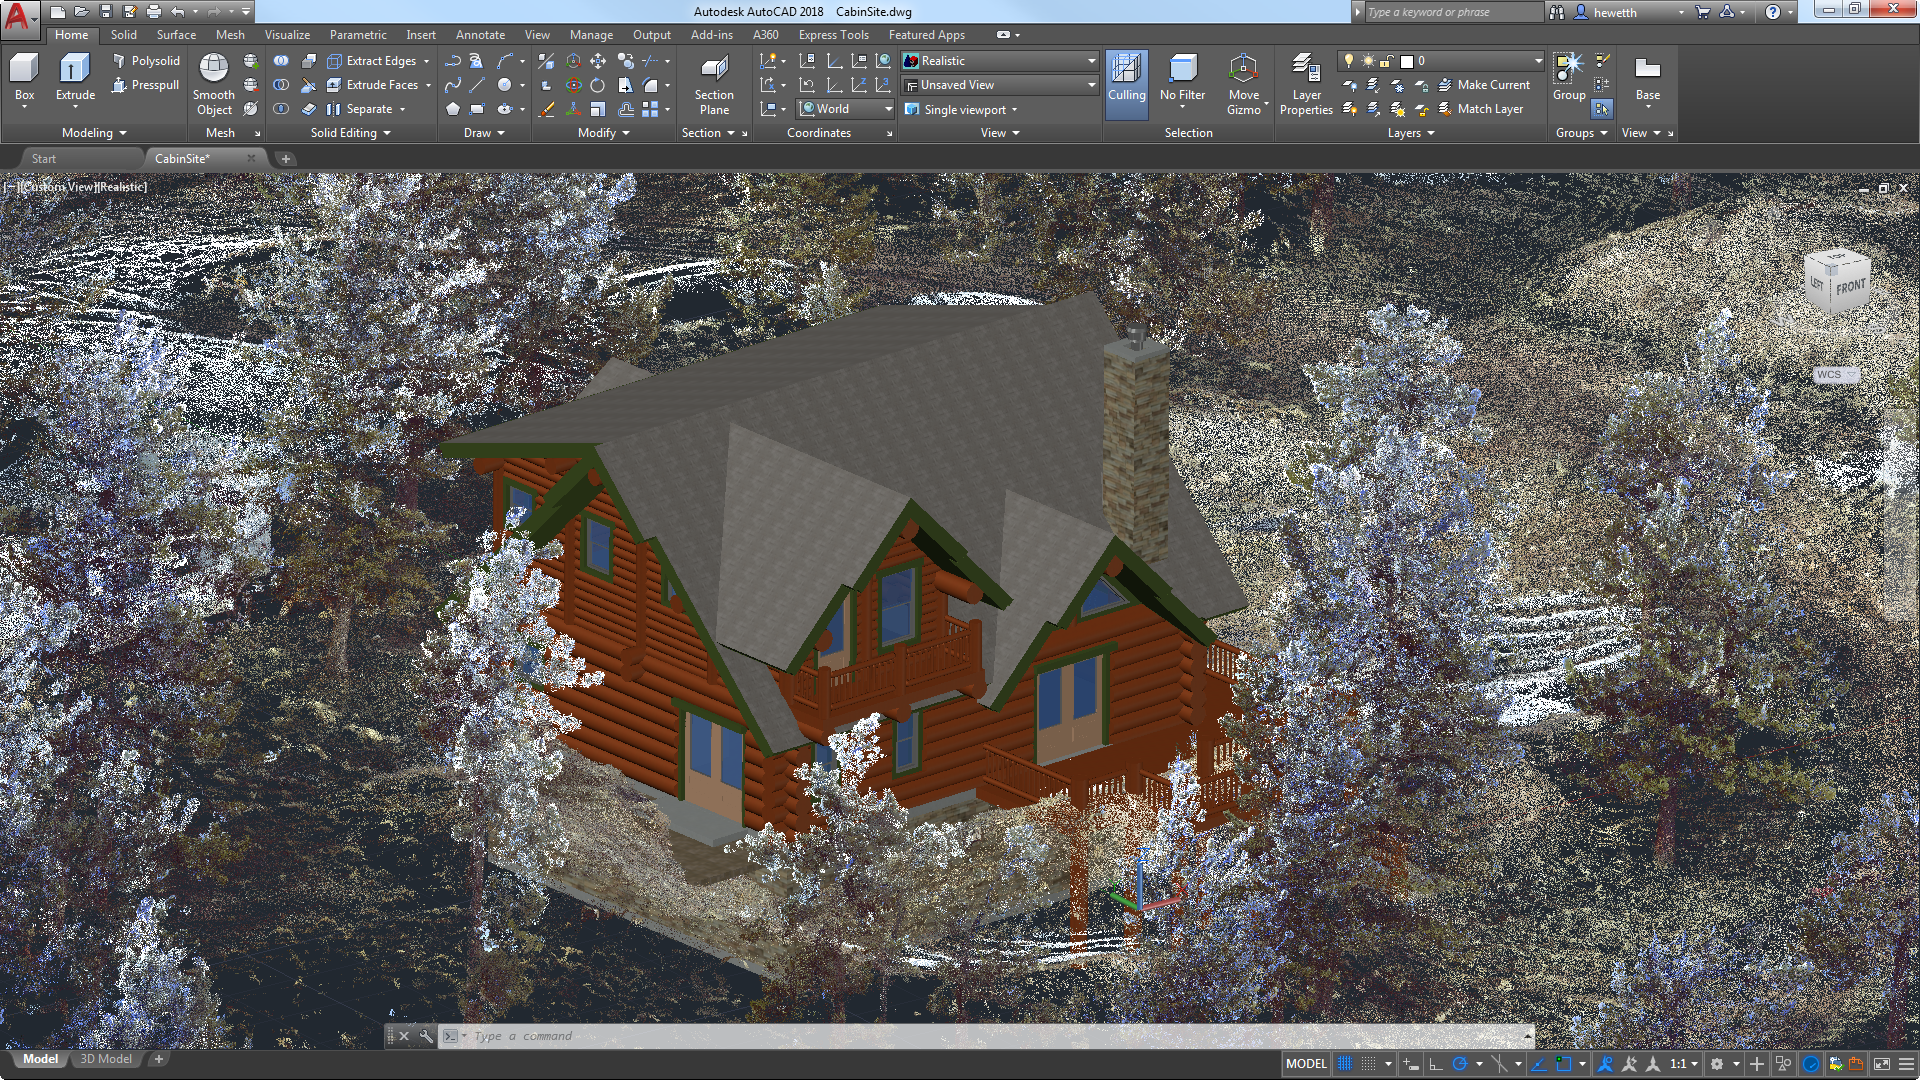 create and communicate almost any design with 3d modelling and visualisation tools